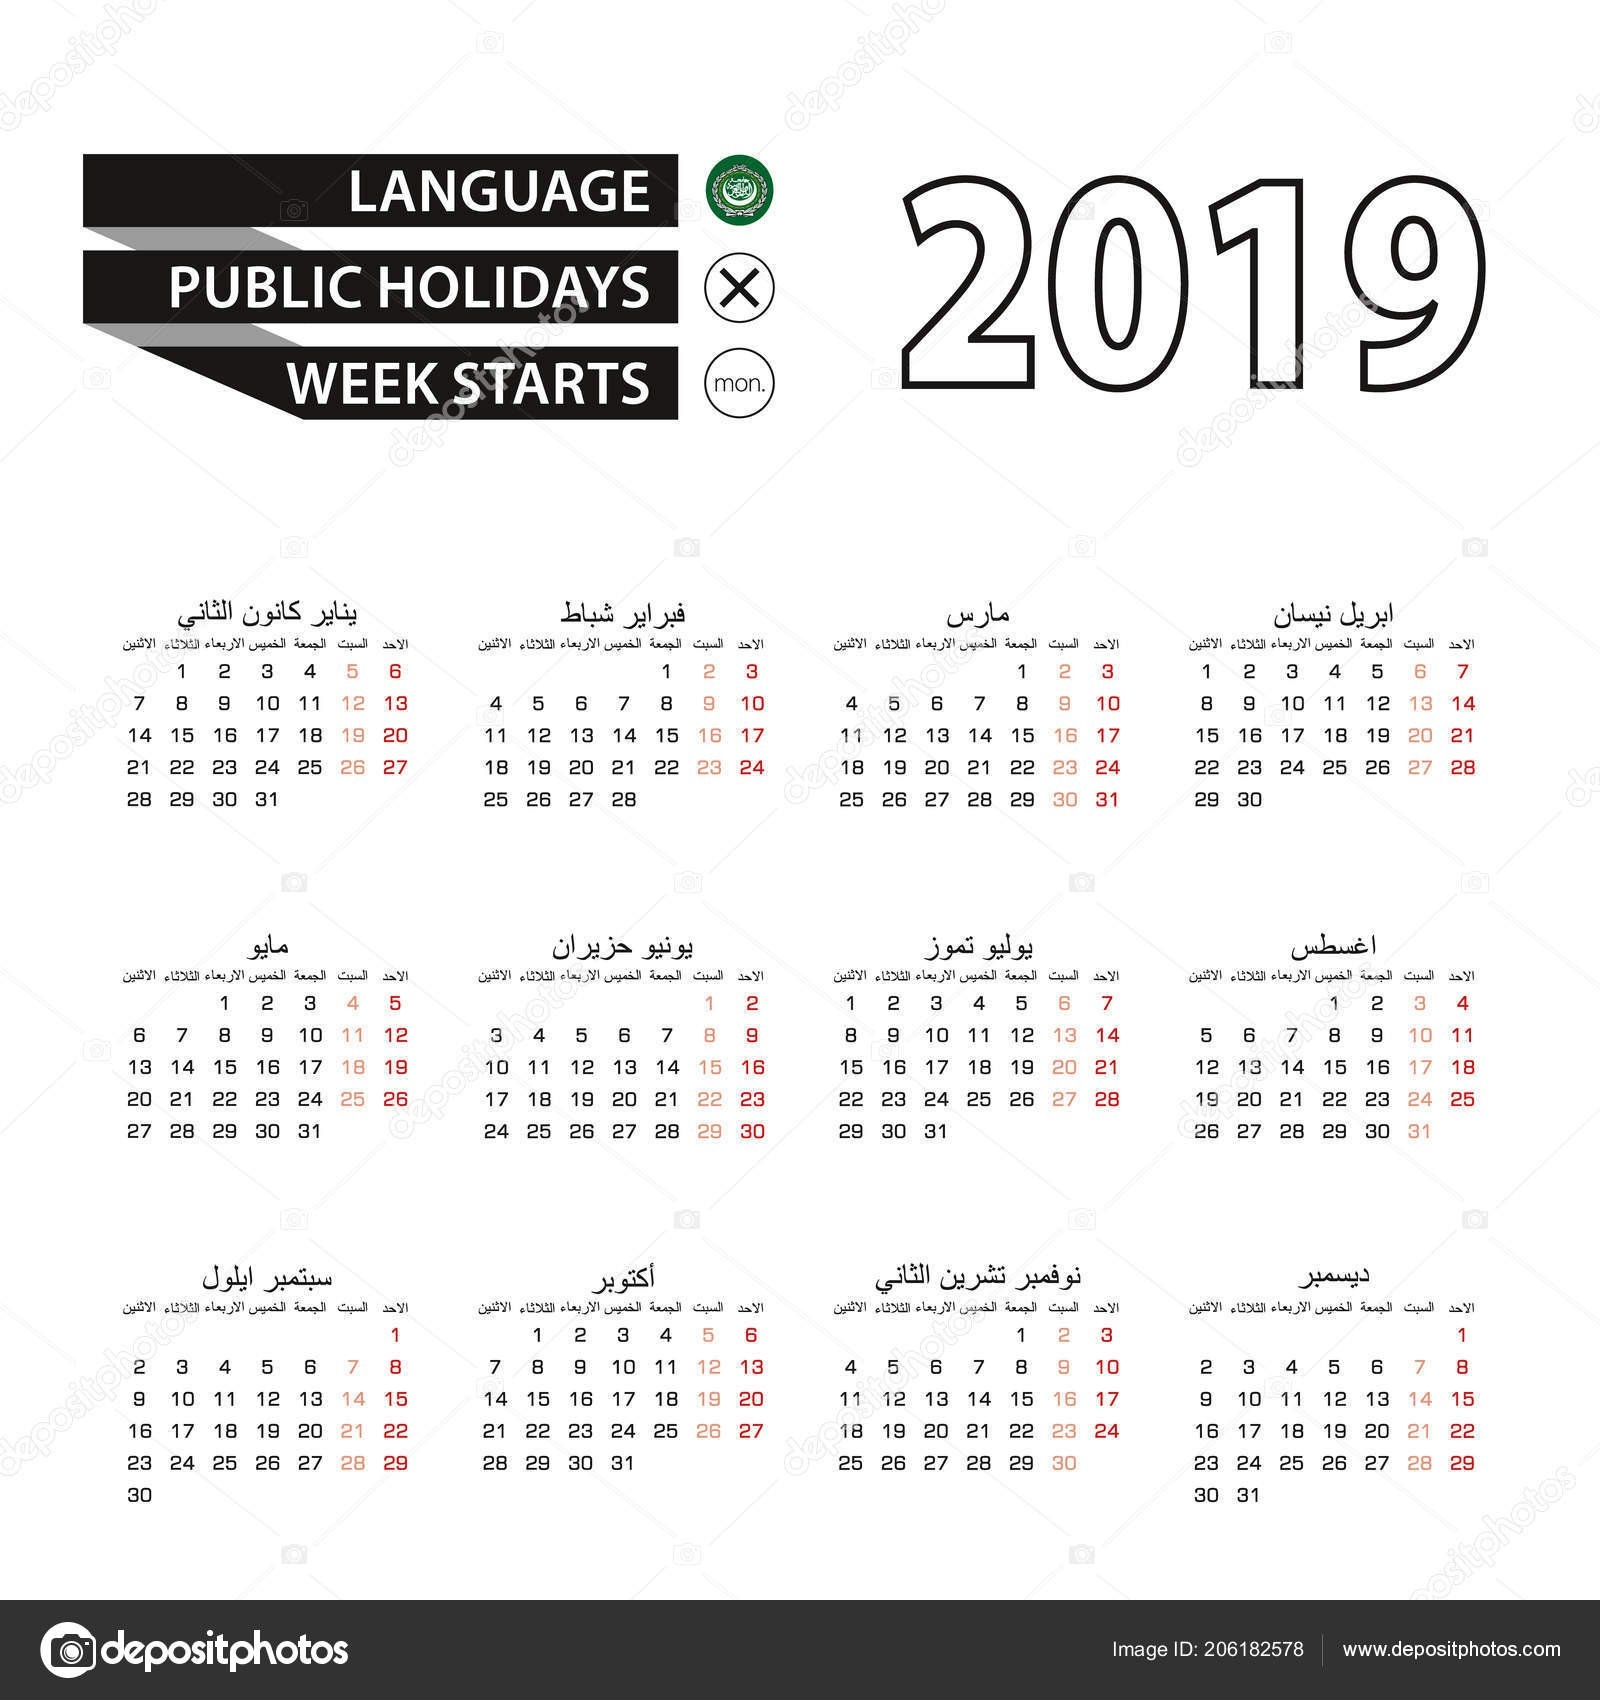 Calendar 2019 In Arabic Language, Week Starts On Monday. — Stock $1 Calendar 2019